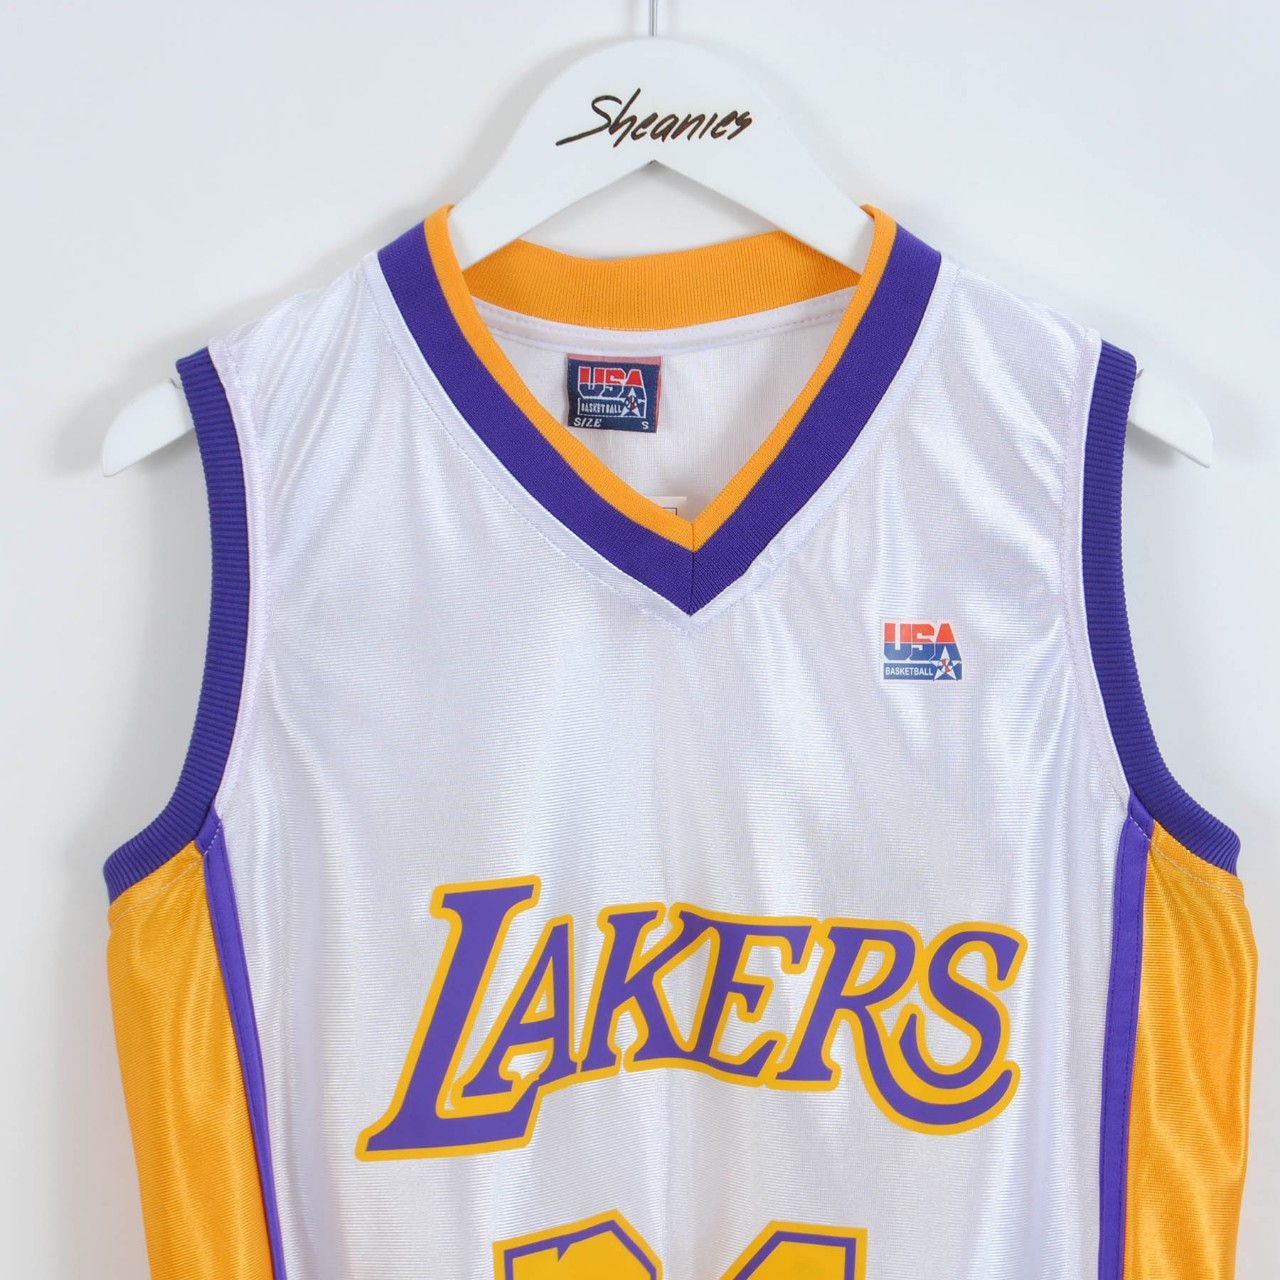 sports shoes 70888 1fdd9 LA LAKERS BRYANT #24 USA BASKETBALL JERSEY IN ...